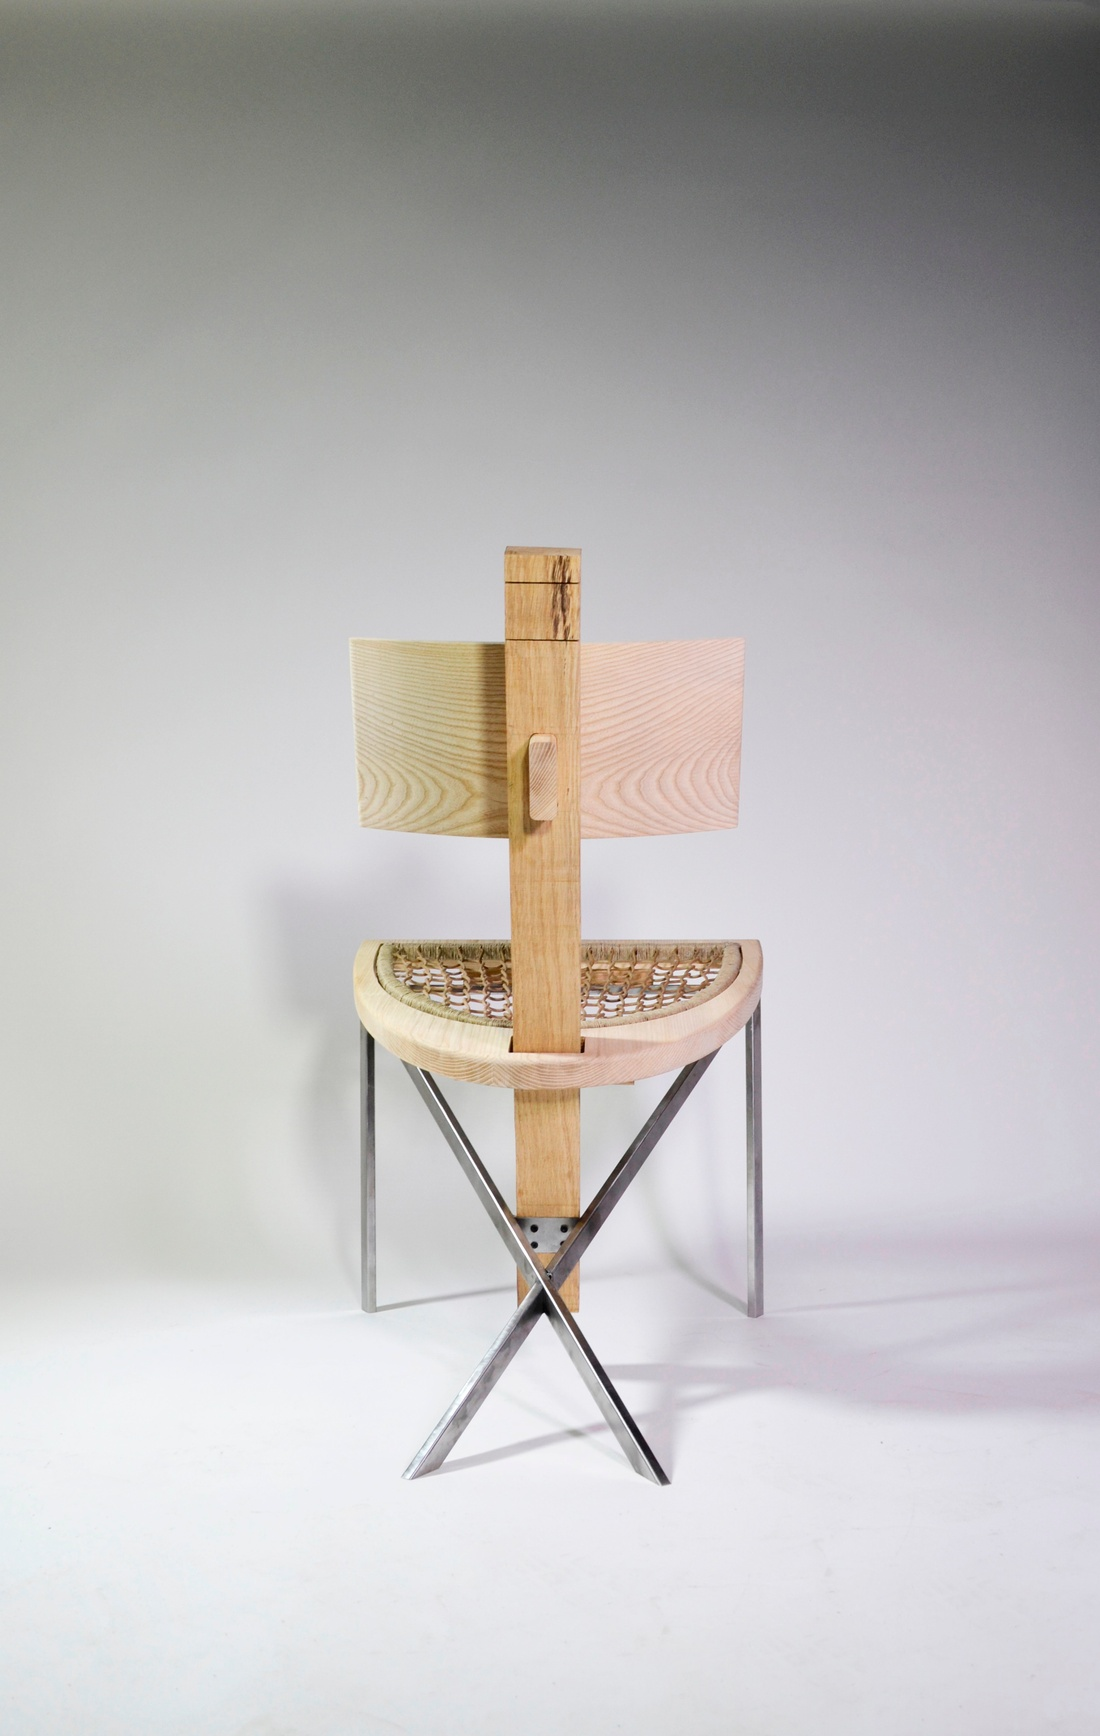 Chair by Andreas de Camps